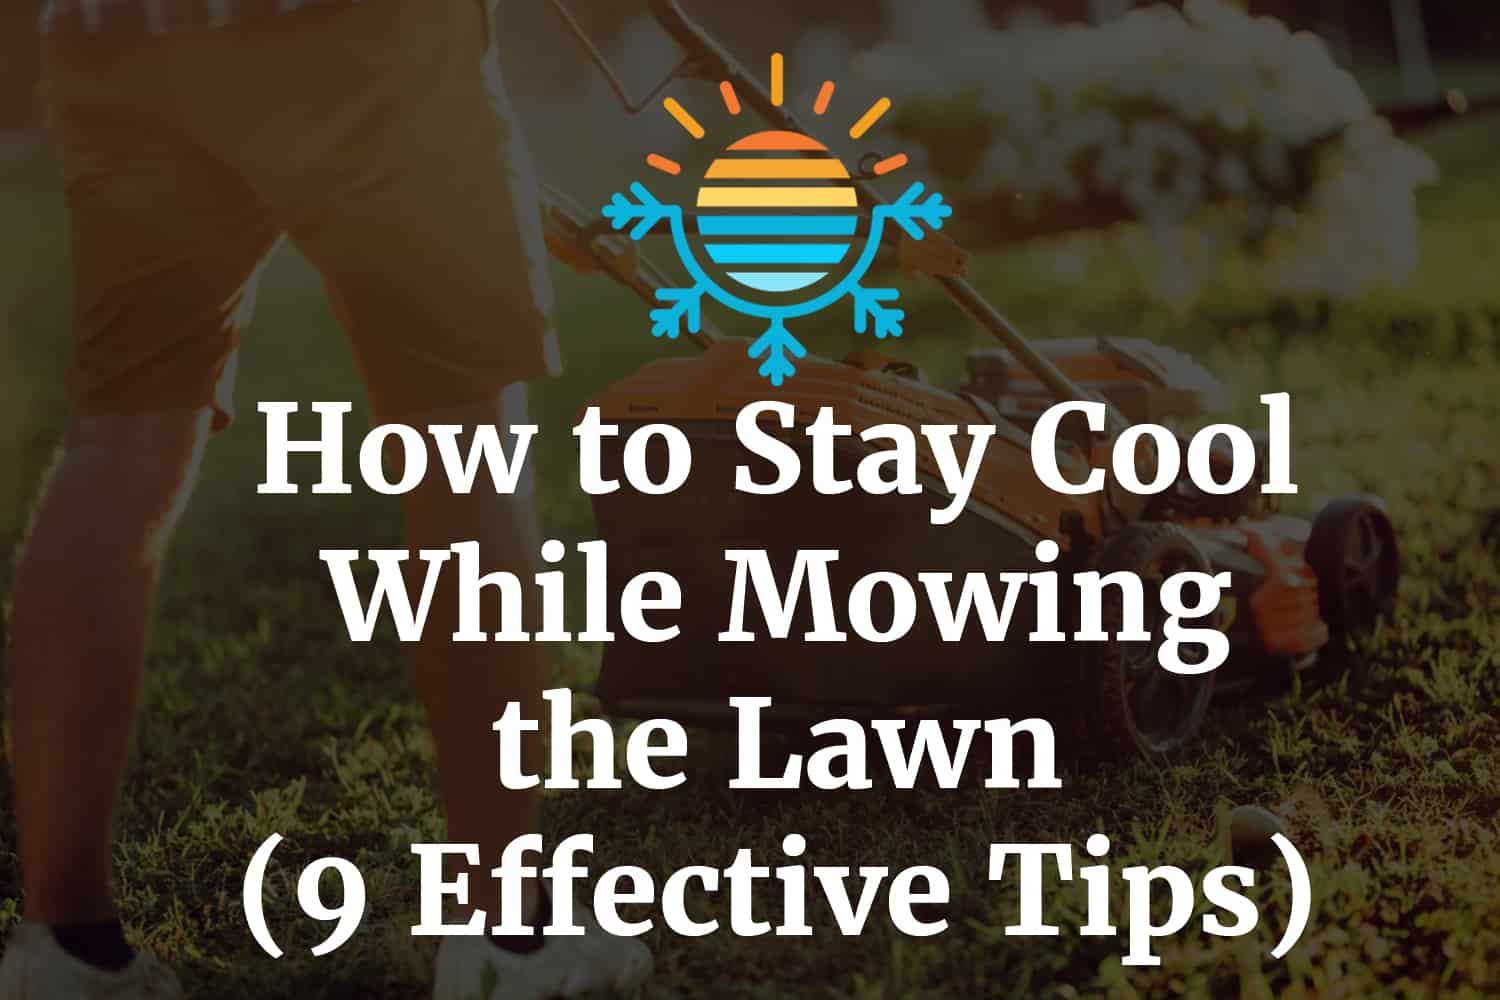 How to Stay Cool While Mowing the Lawn (9 Effective Tips)